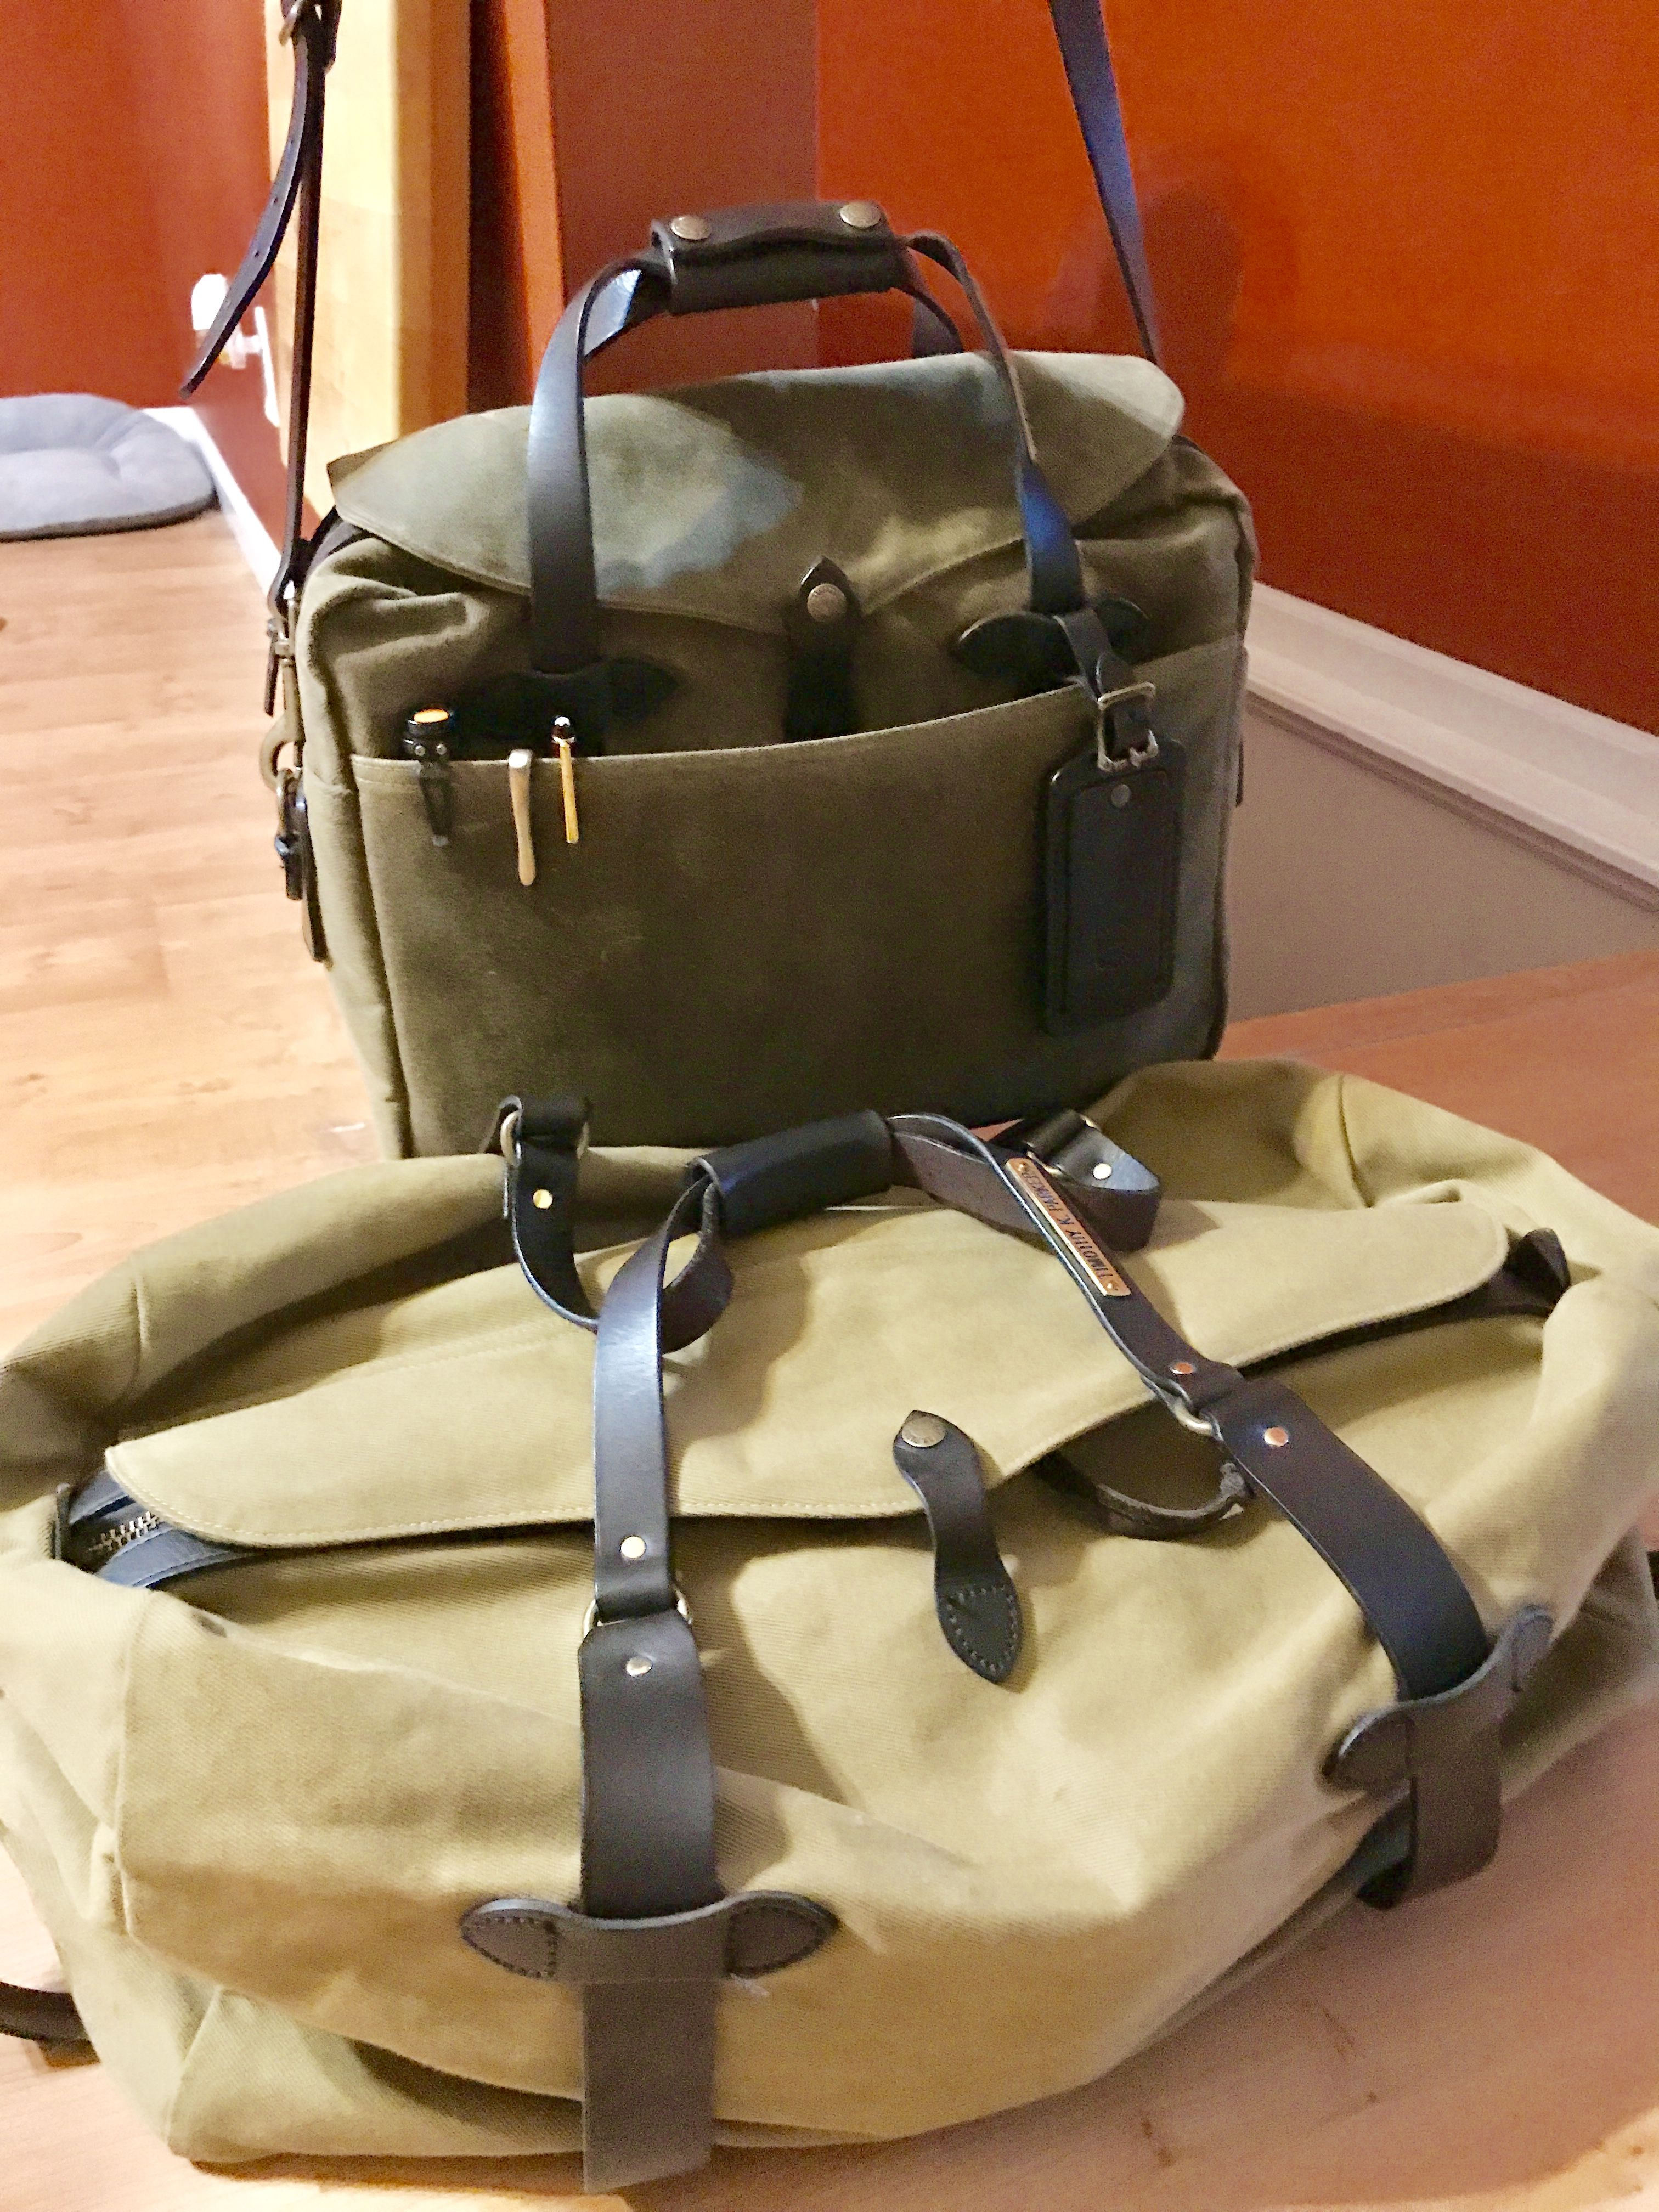 My Trusty Filson Bags Ready For